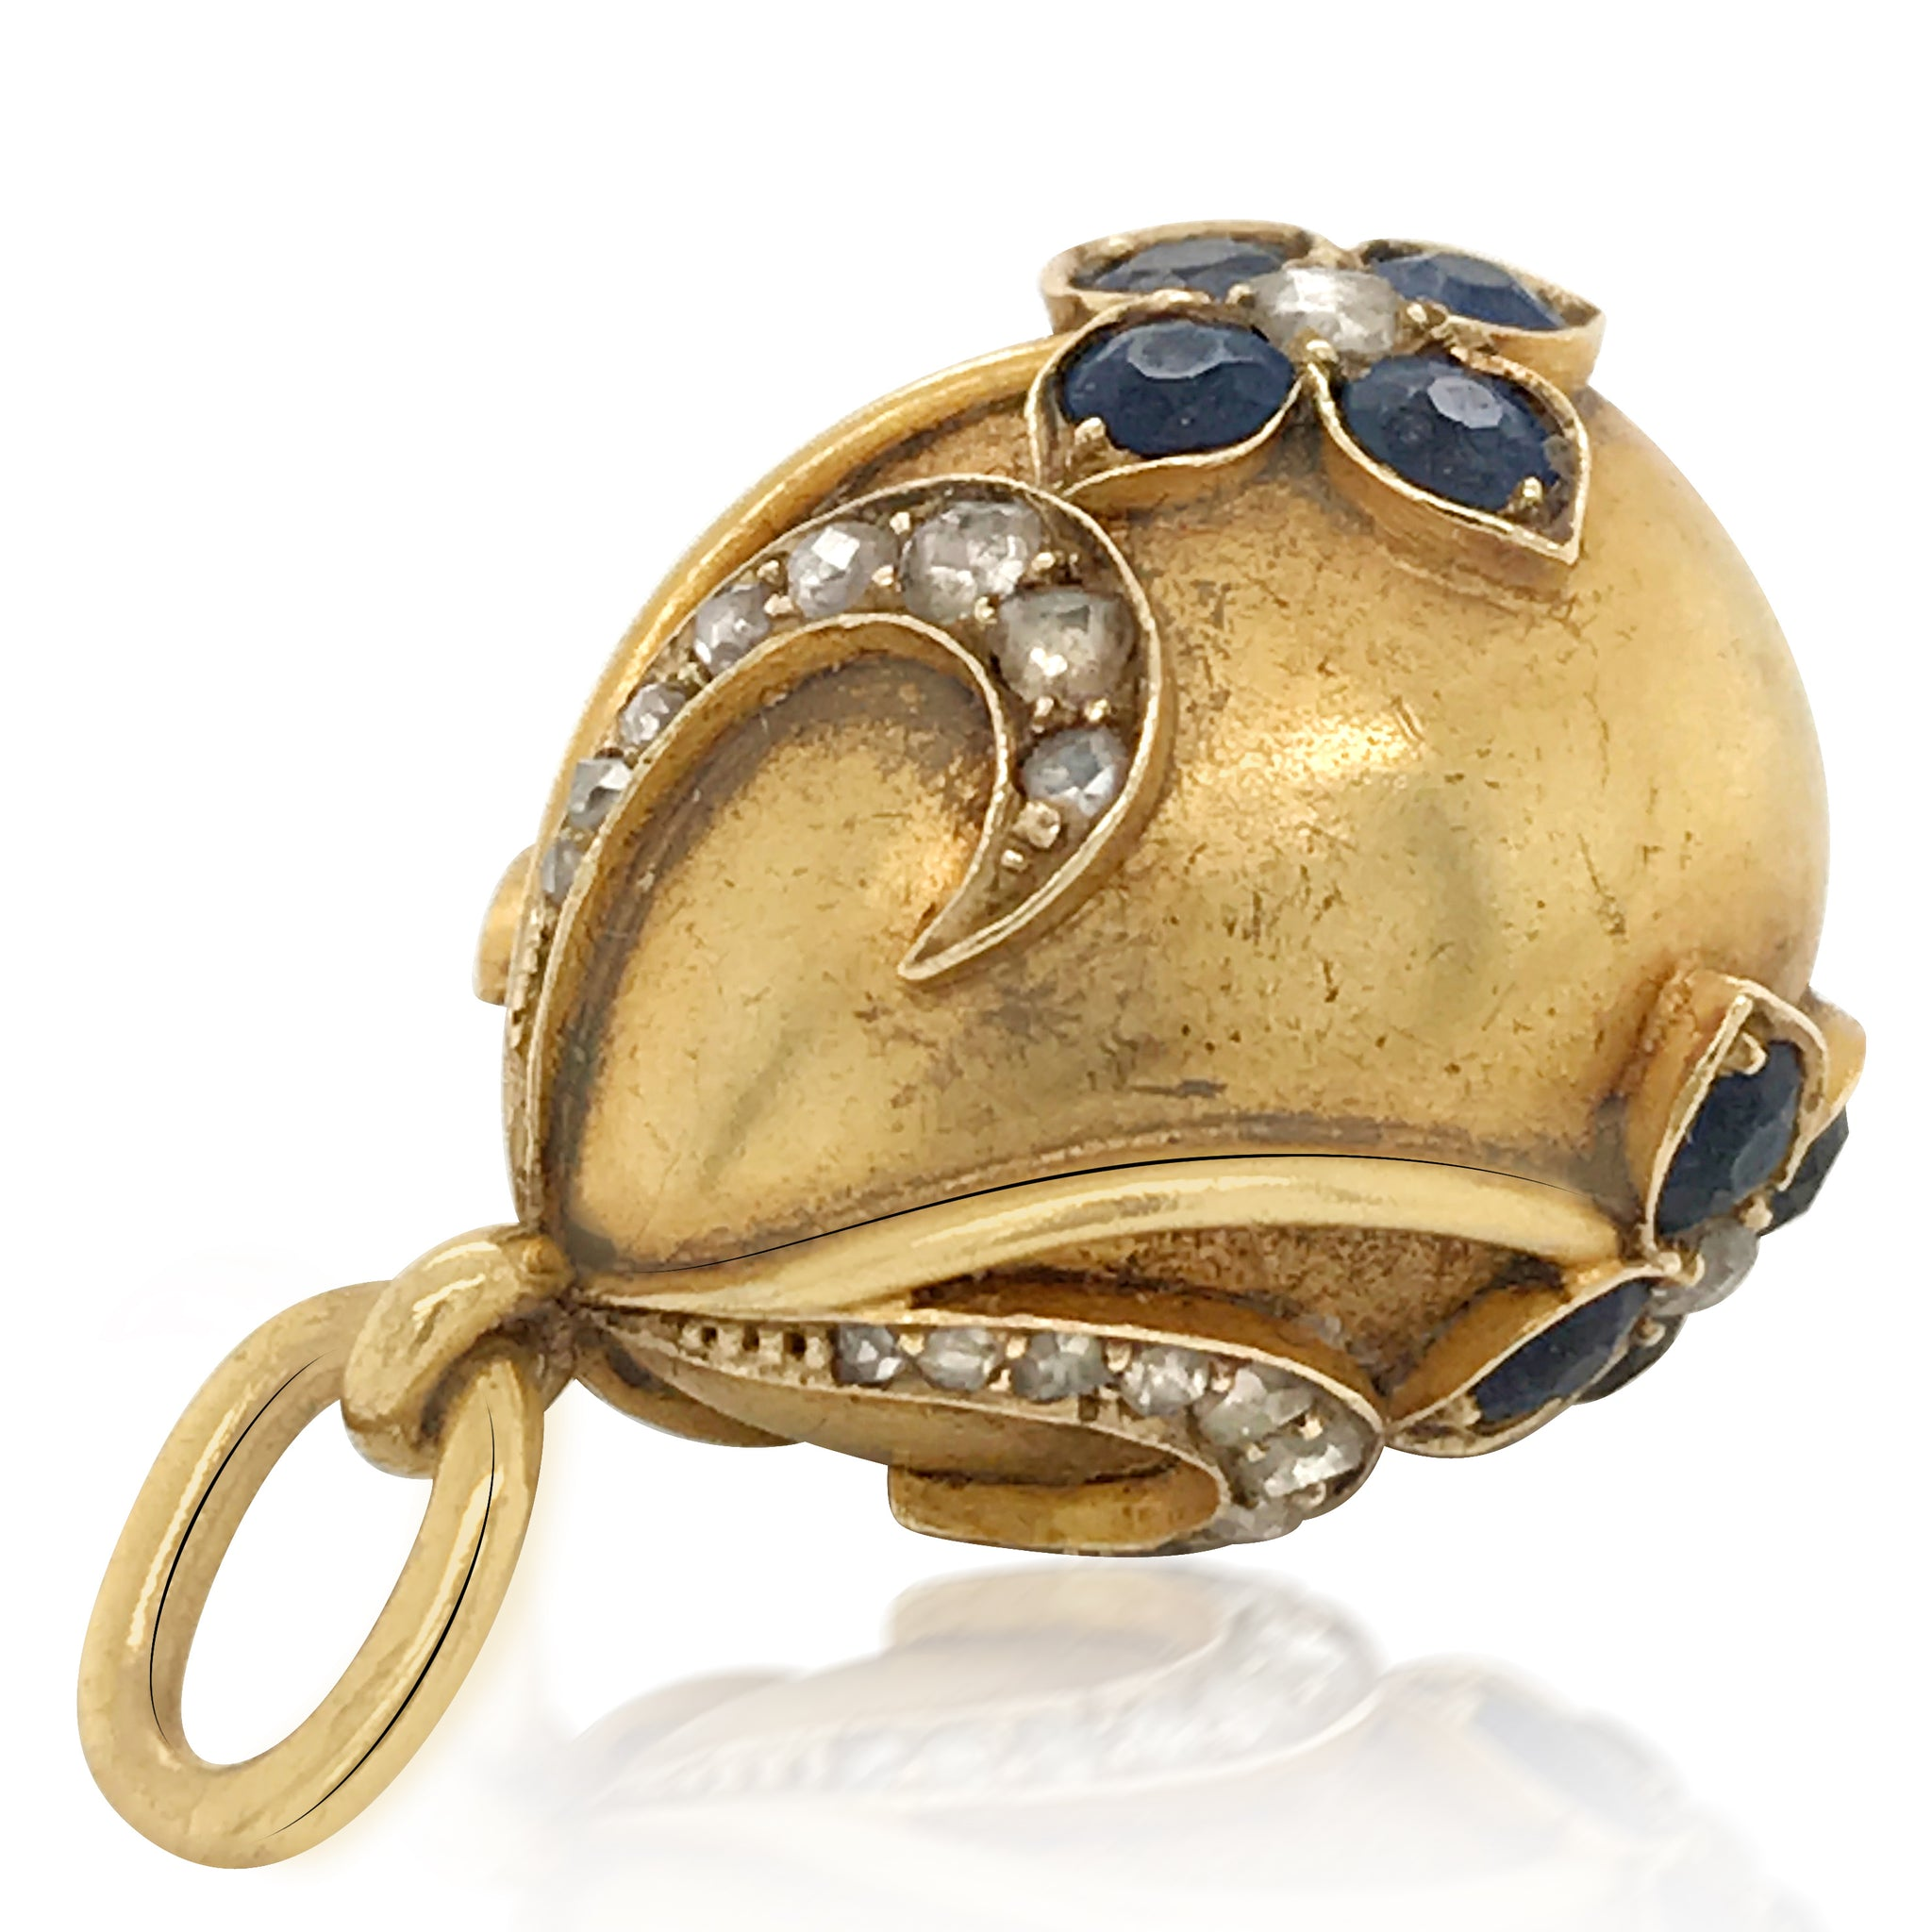 Faberge, Sapphire Gold Egg - Lueur Jewelry